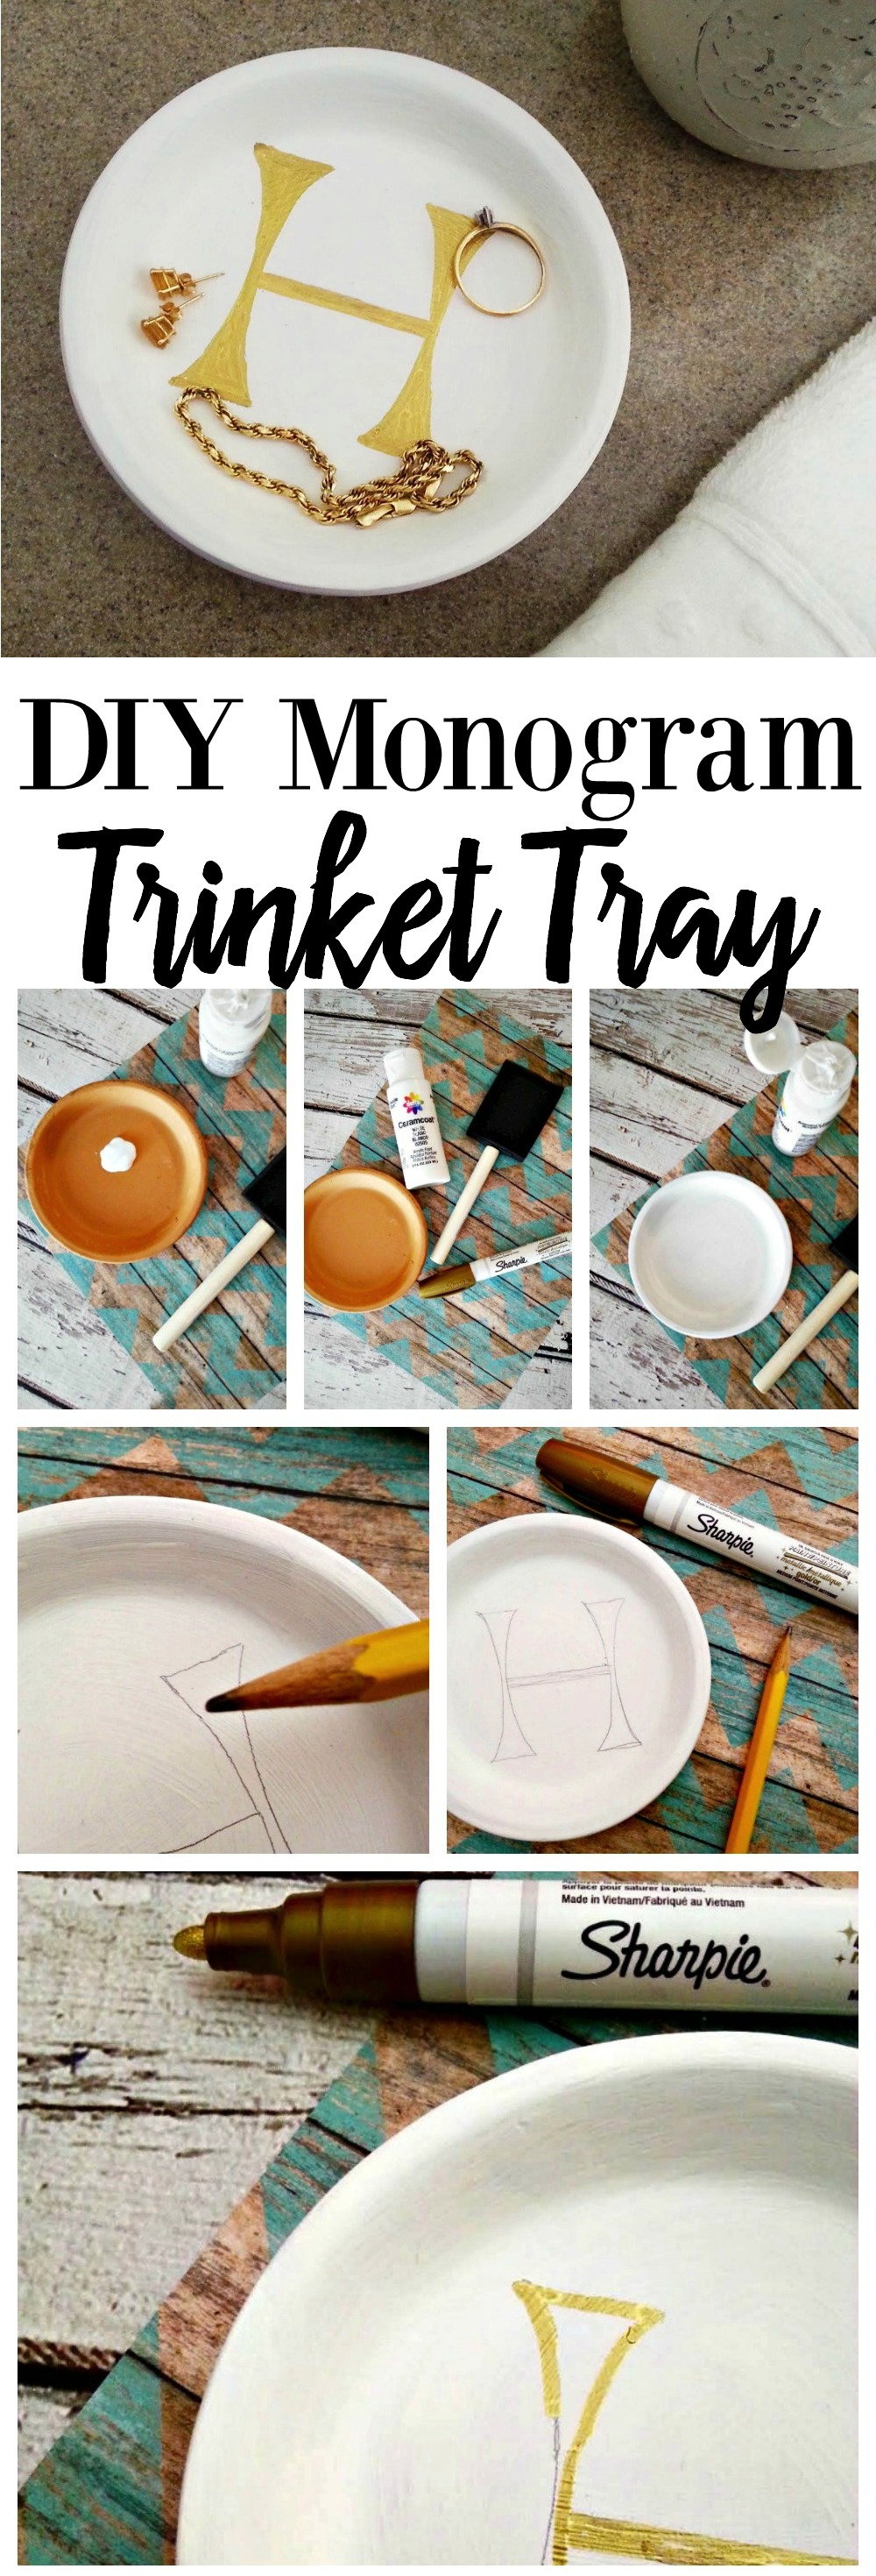 DIY Monogram Trinket Tray